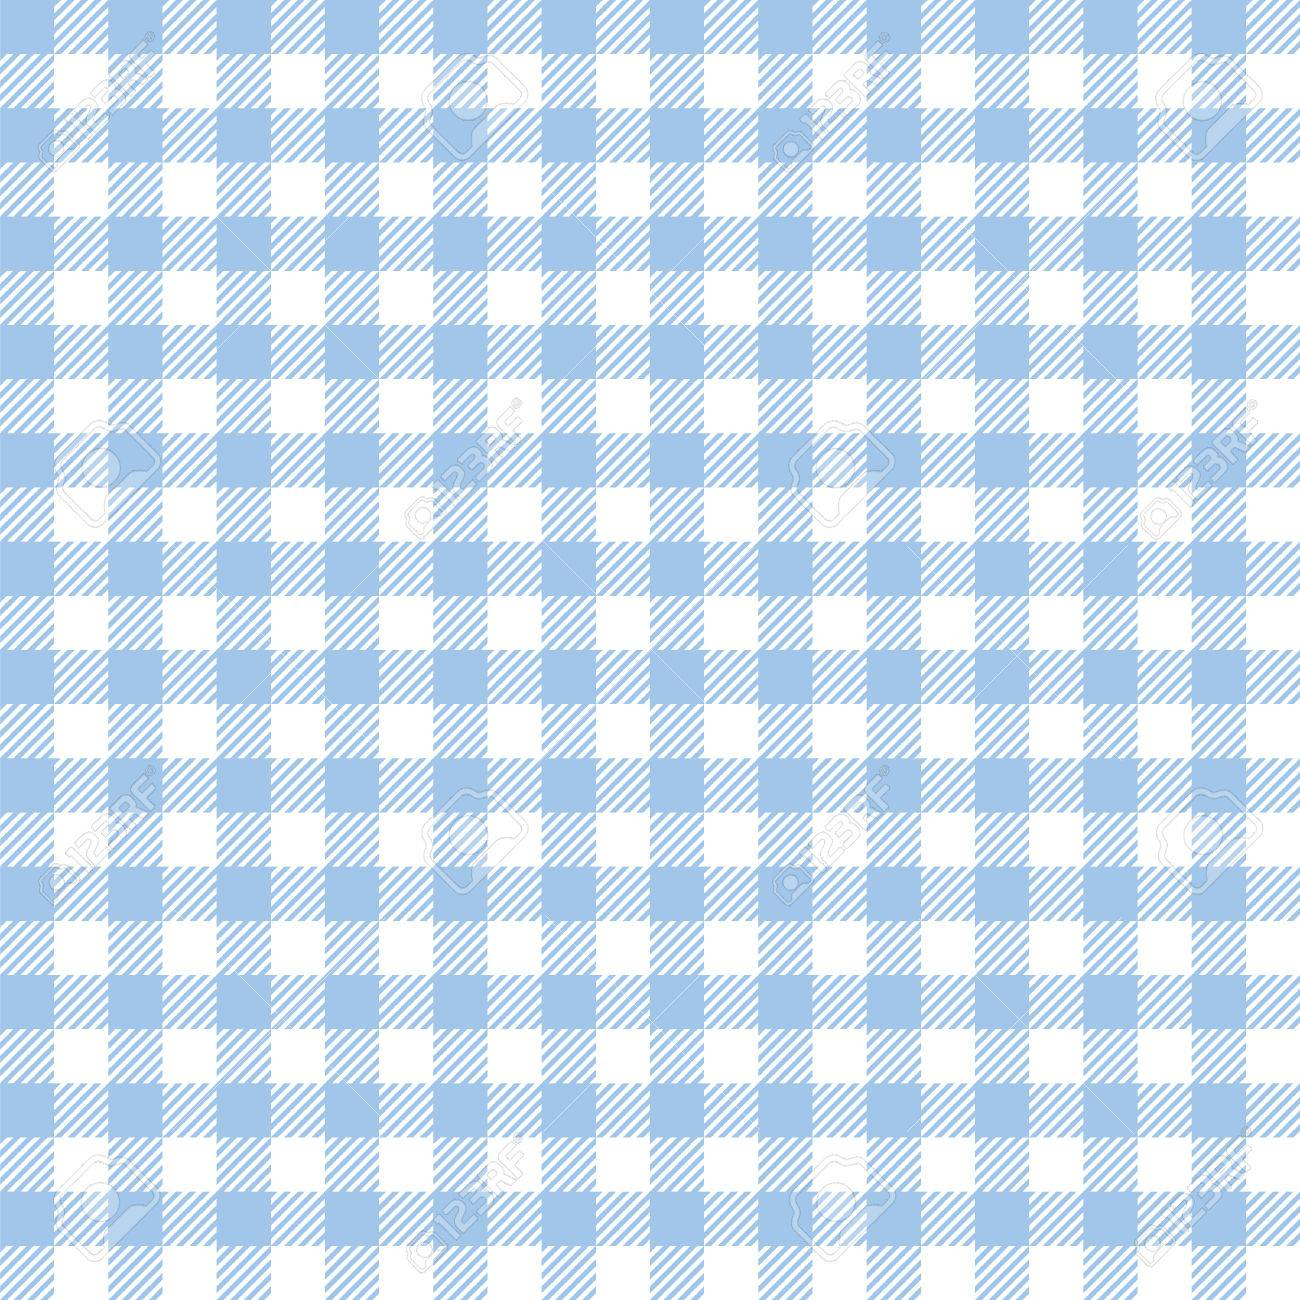 1300x1300 - Blue Plaid 2